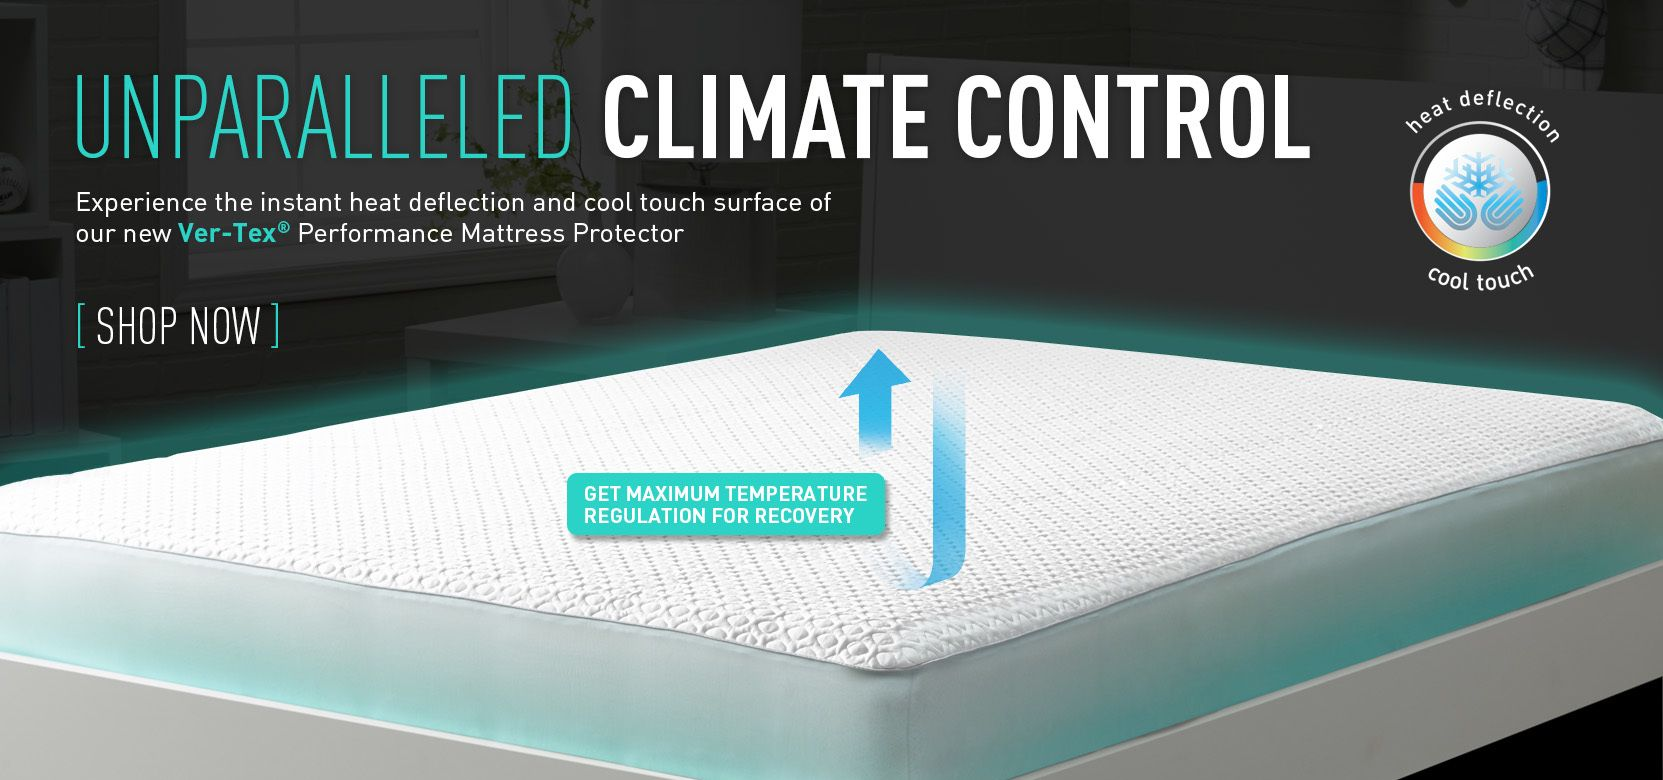 experience unparalleled climate control in your bed with our ver tex